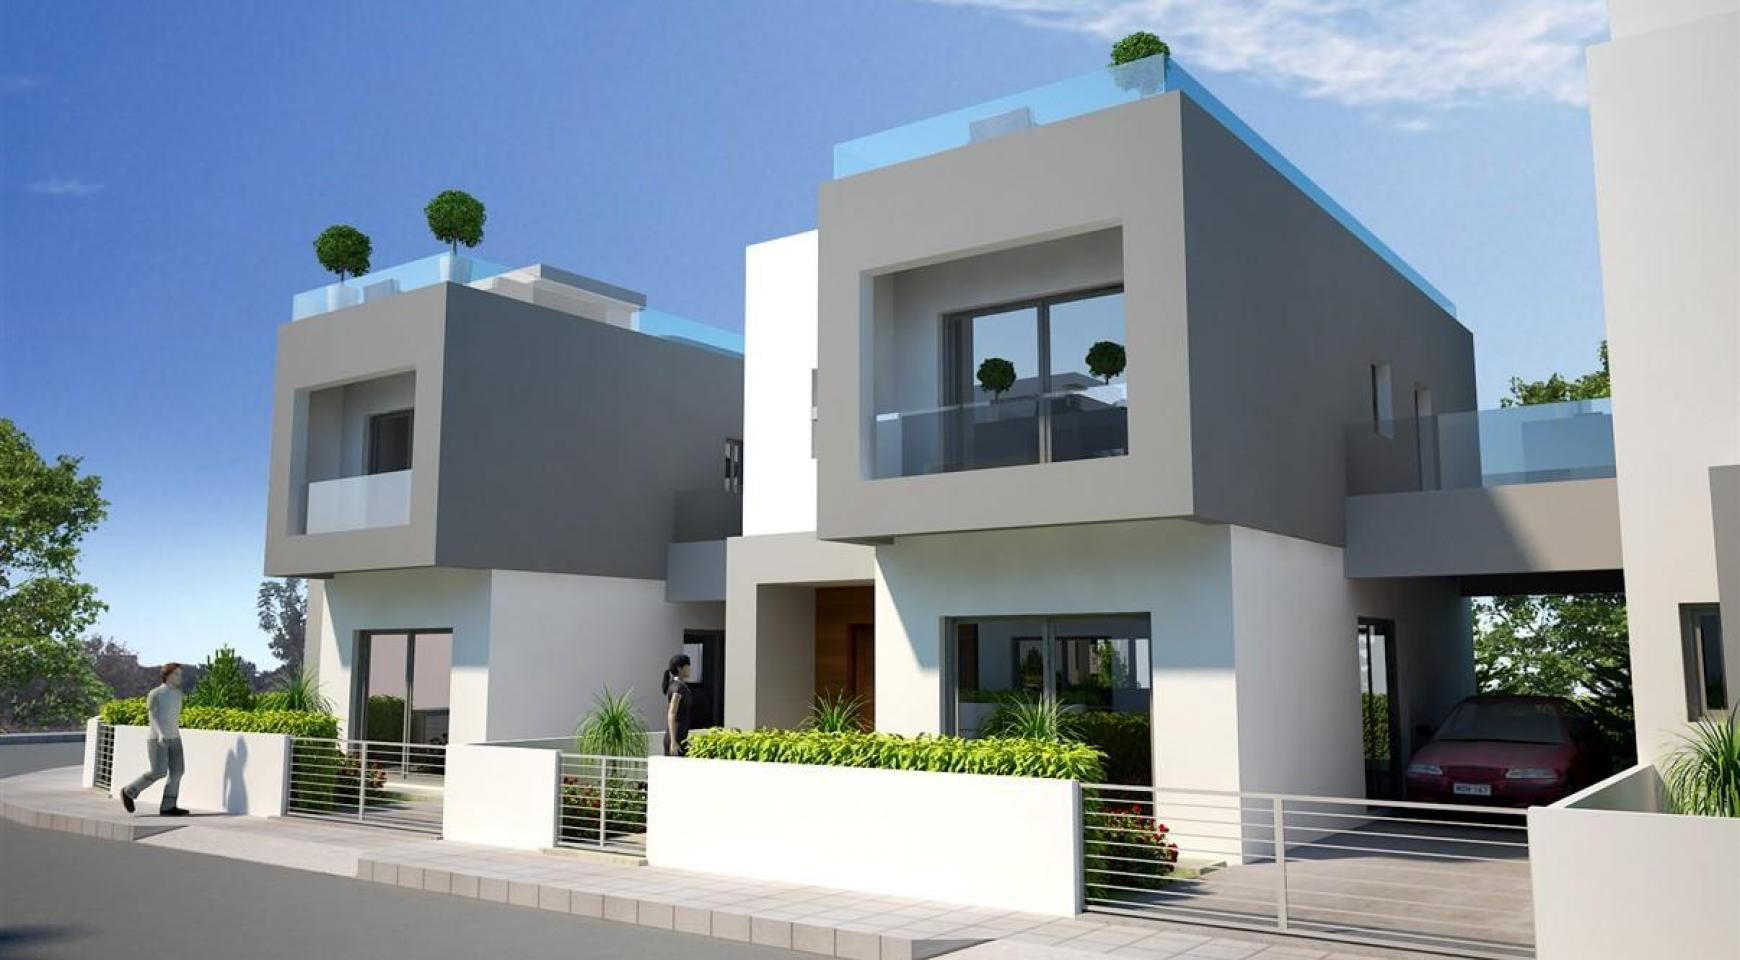 3 Bedroom Villa within a New Project - 33